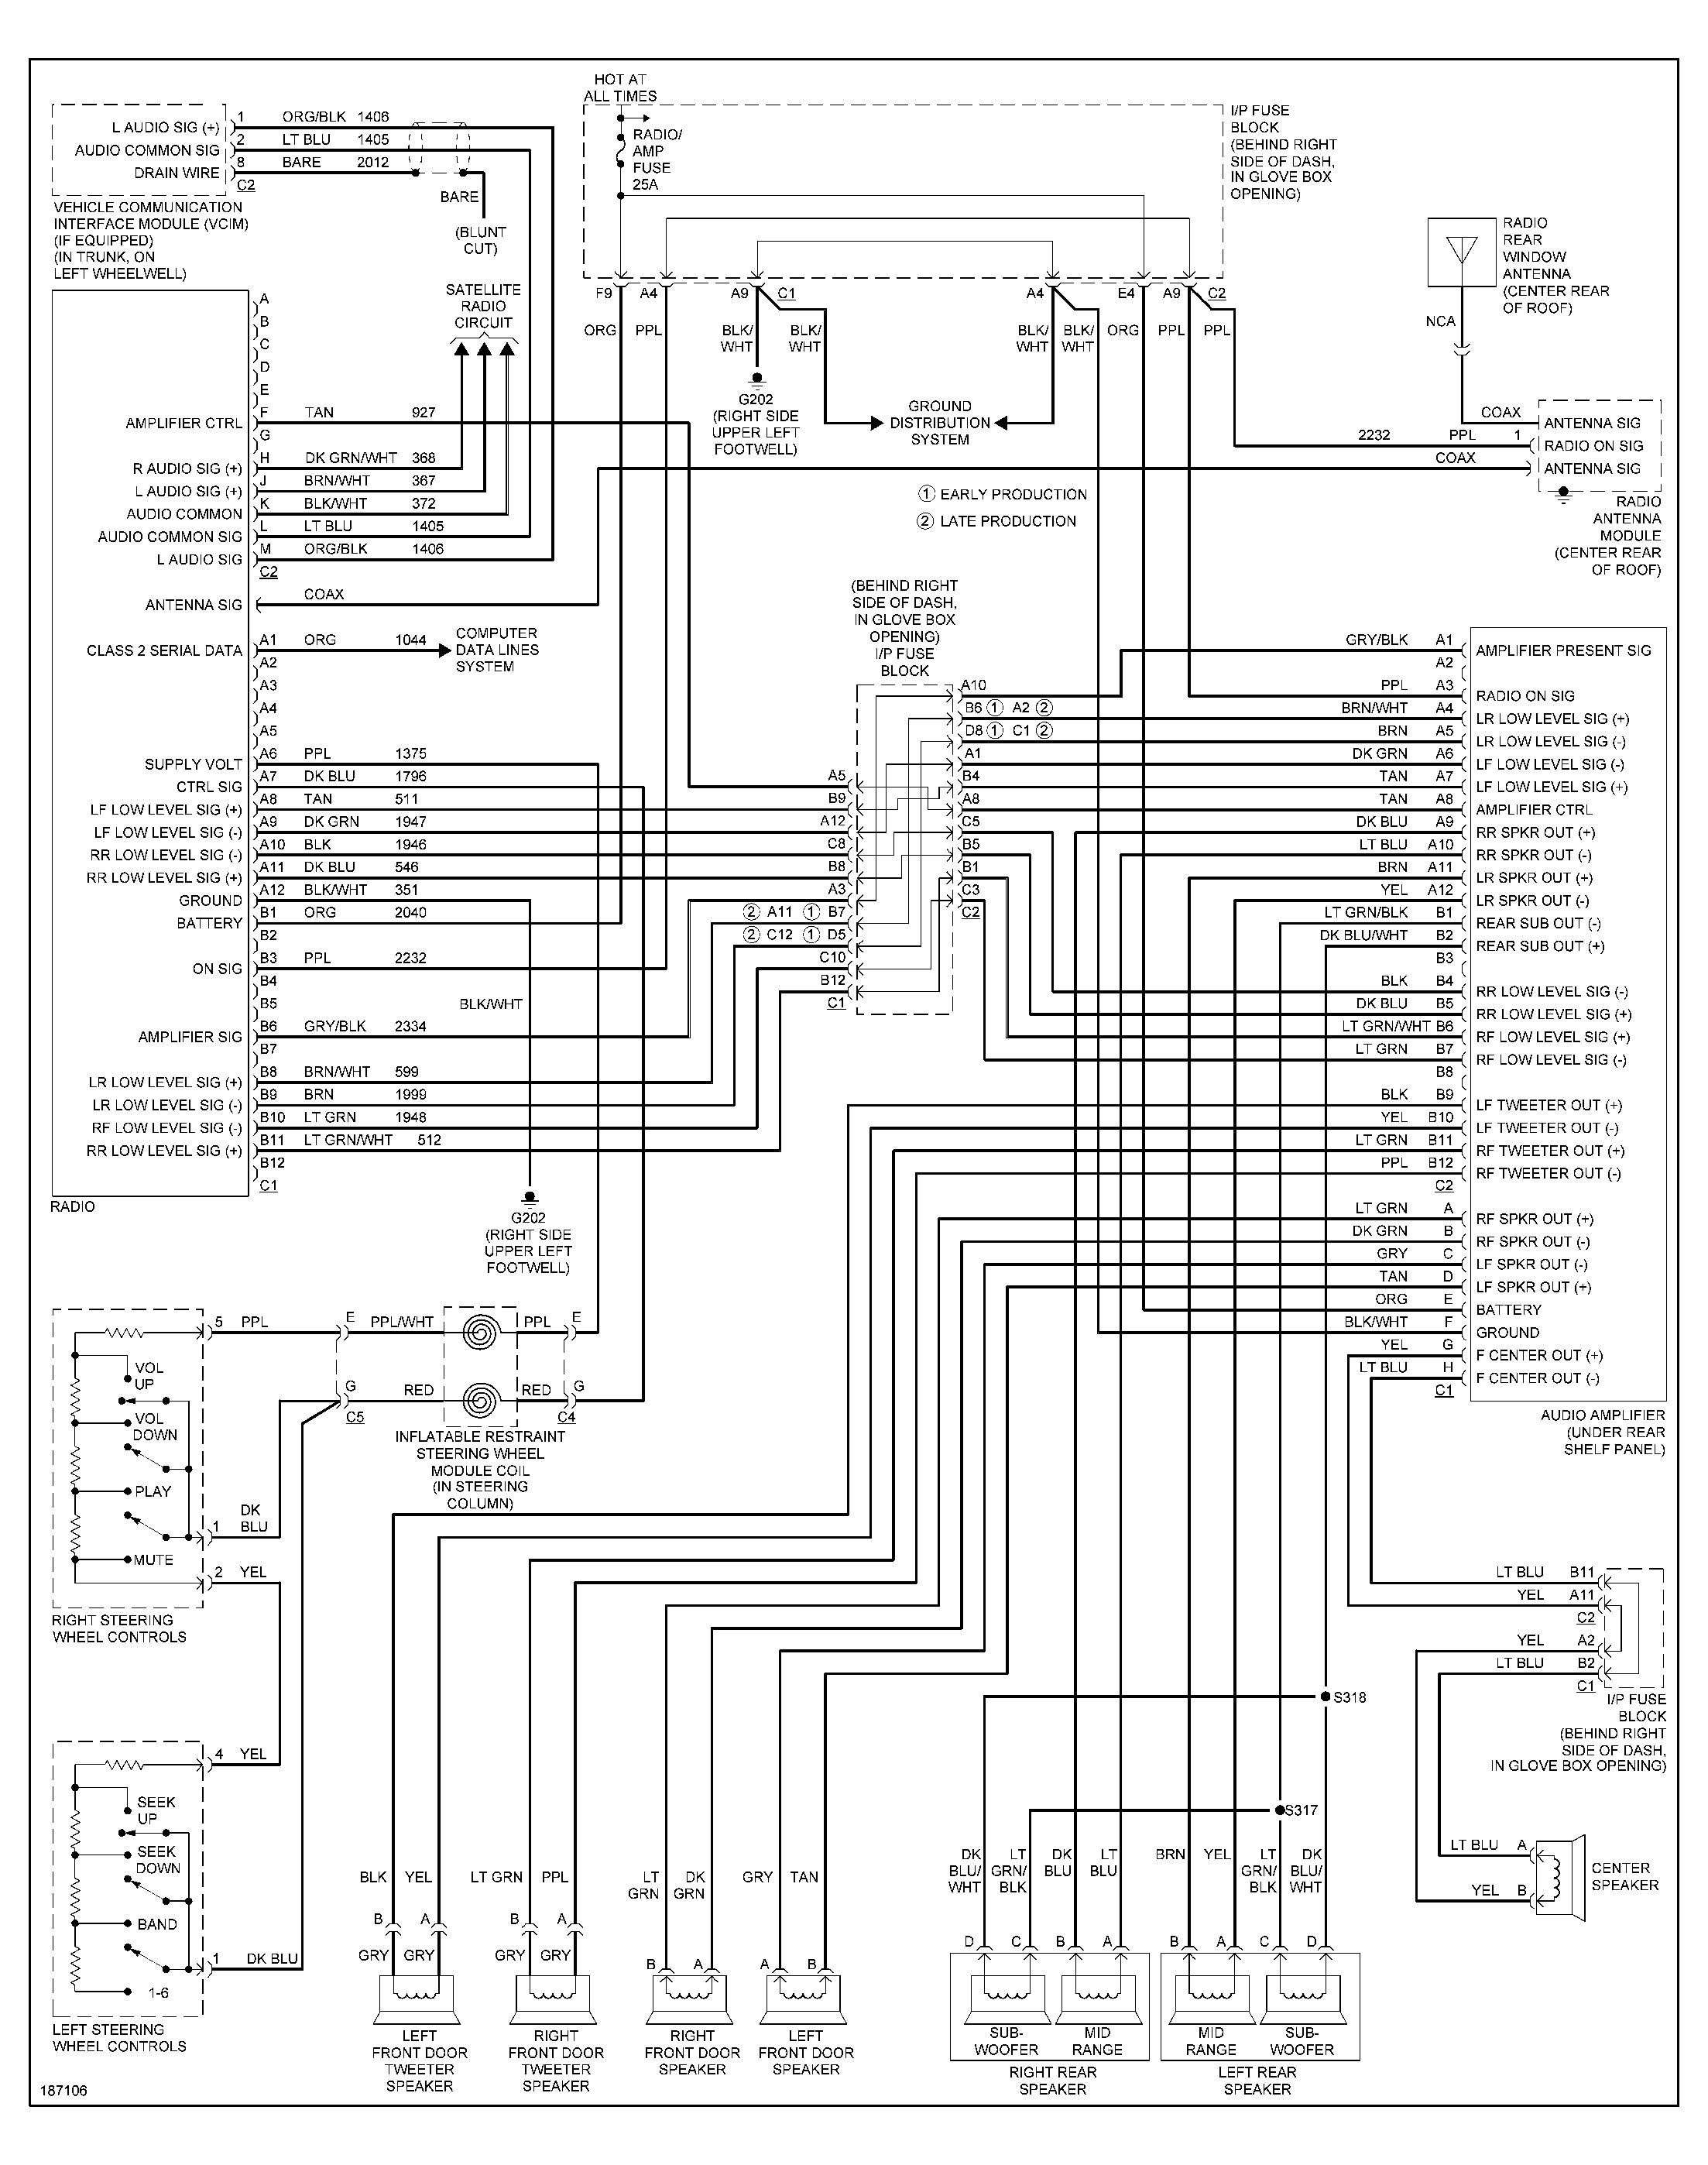 2006 Pontiac Grand Prix Headlight Diagram Wiring Diagrams Post In 2021 Pontiac Montana Pontiac Grand Prix Pontiac Sunfire